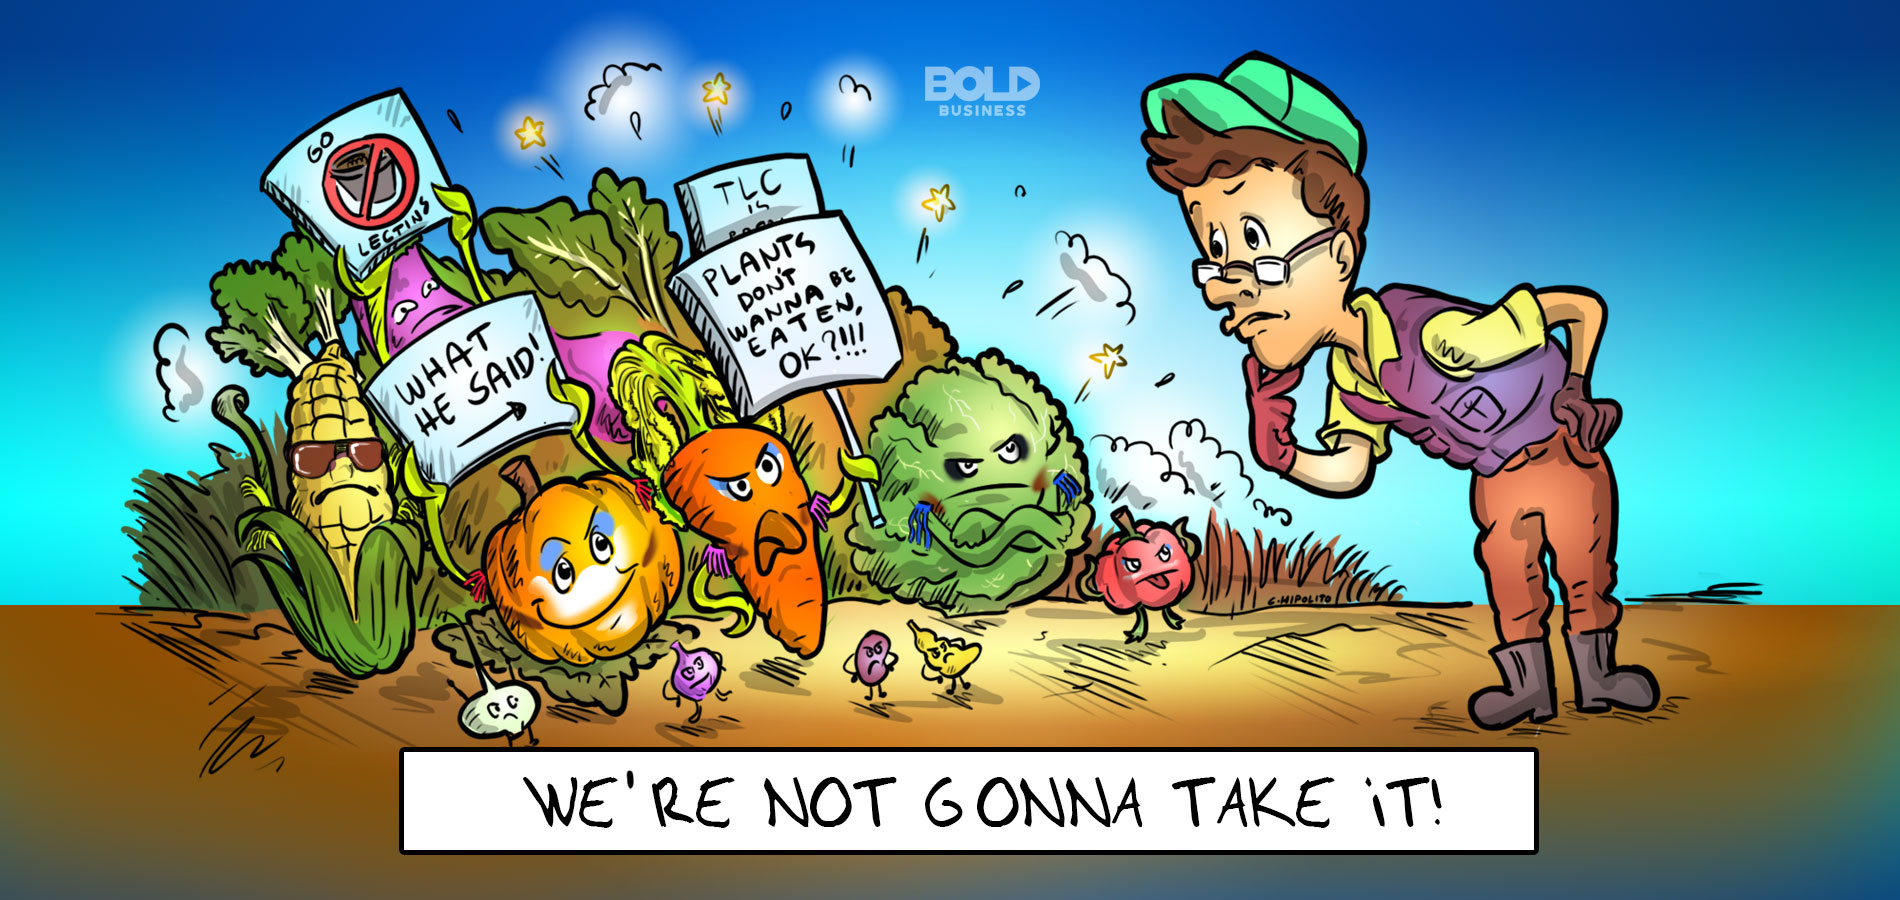 cartoon of a farmer looking over a group of vegetables with lectins, holding signs that say plants don't want to be eaten